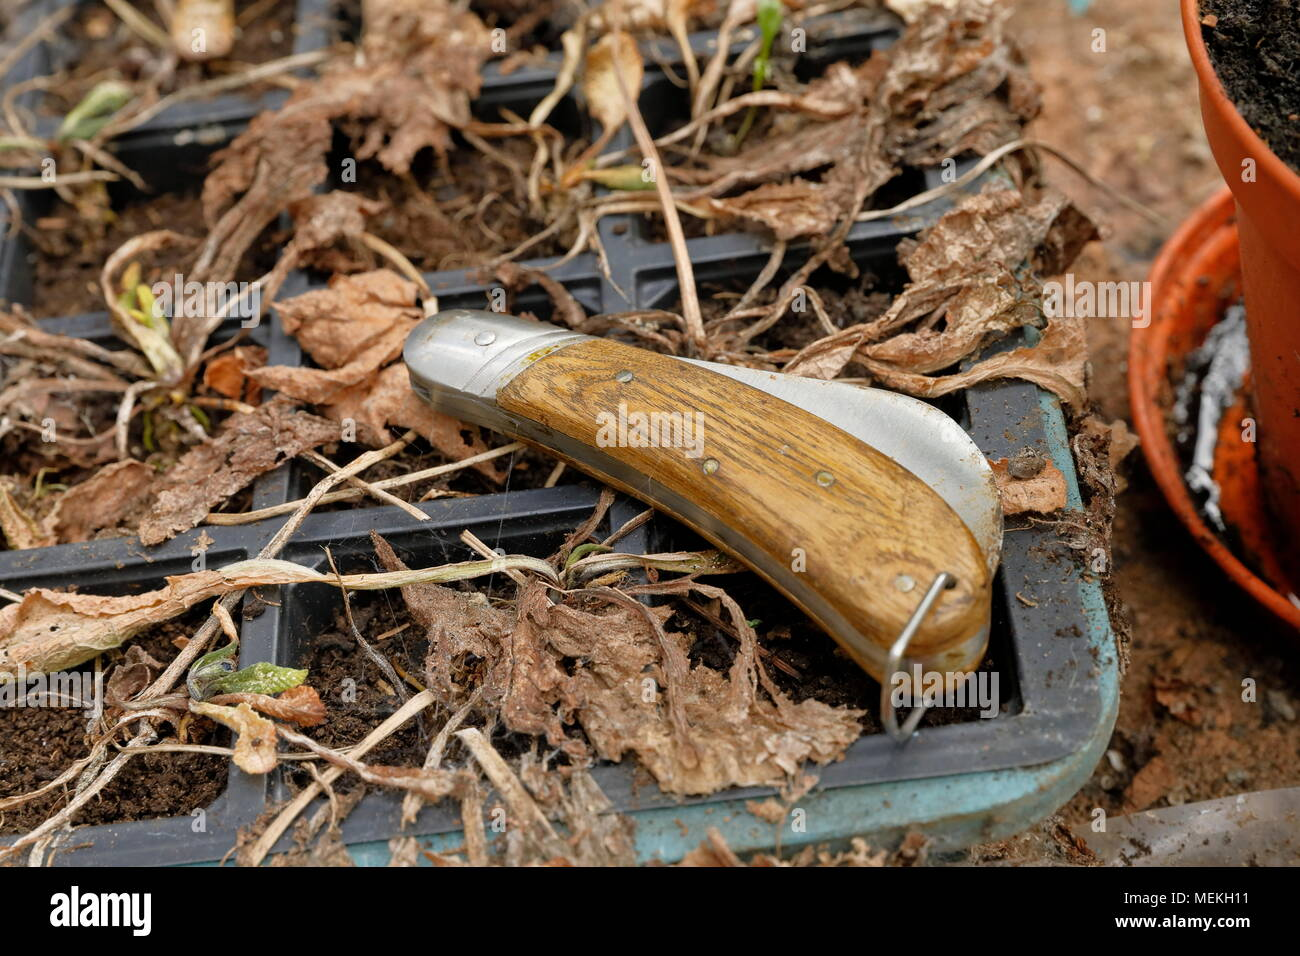 Pruning Knife Stock Photos & Pruning Knife Stock Images - Alamy